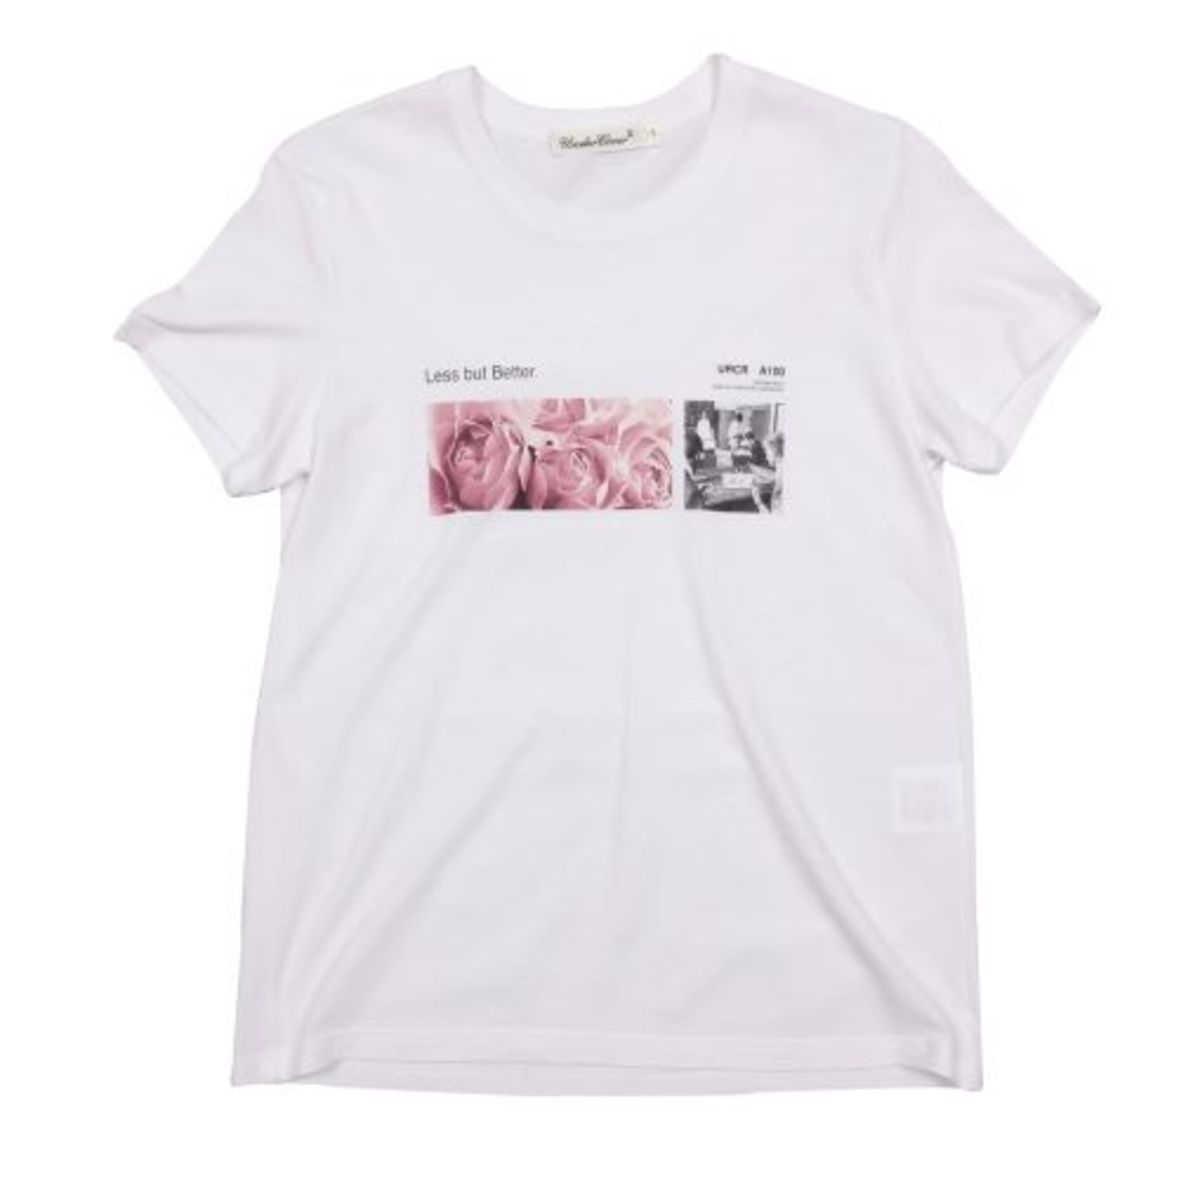 undercover_ss10_tee_1